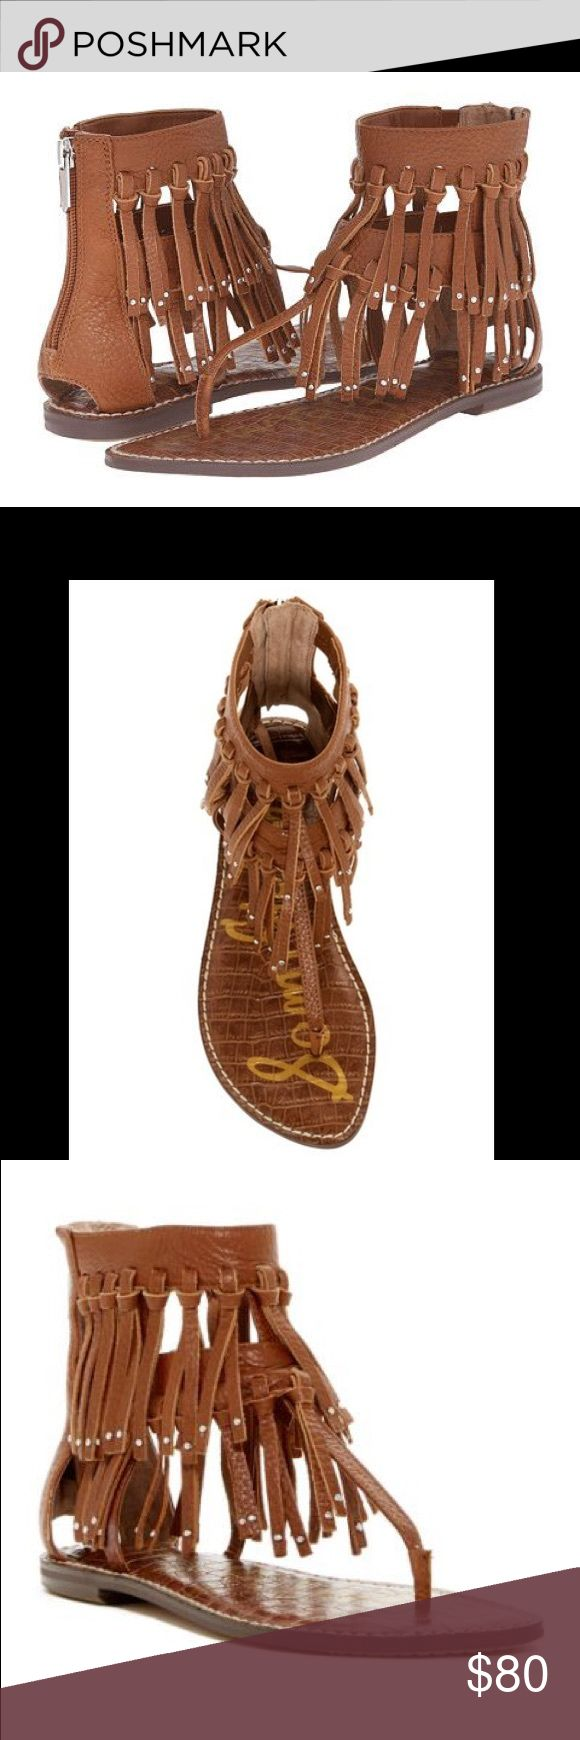 """NEW Sam Edelman Griffen Fringe Boho Gypsy Sandal NEW in Box $130 Sam Edelman Griffen Fringe Boho Gypsy Sandal In Size 8.5. Saddle color. Soft, stud-tipped fringe lends bohemian allure to a trend-savvy thong sandal shaped from supple tumbled leather and set on a flat, slim sole. Lightly padded cork footbed . 5"""" shaft  Back zip closure. Leather upper/synthetic lining and sole.photos are main part of description. Same or next day shipping. Holiday gift wrap available upon request. Feel free to…"""